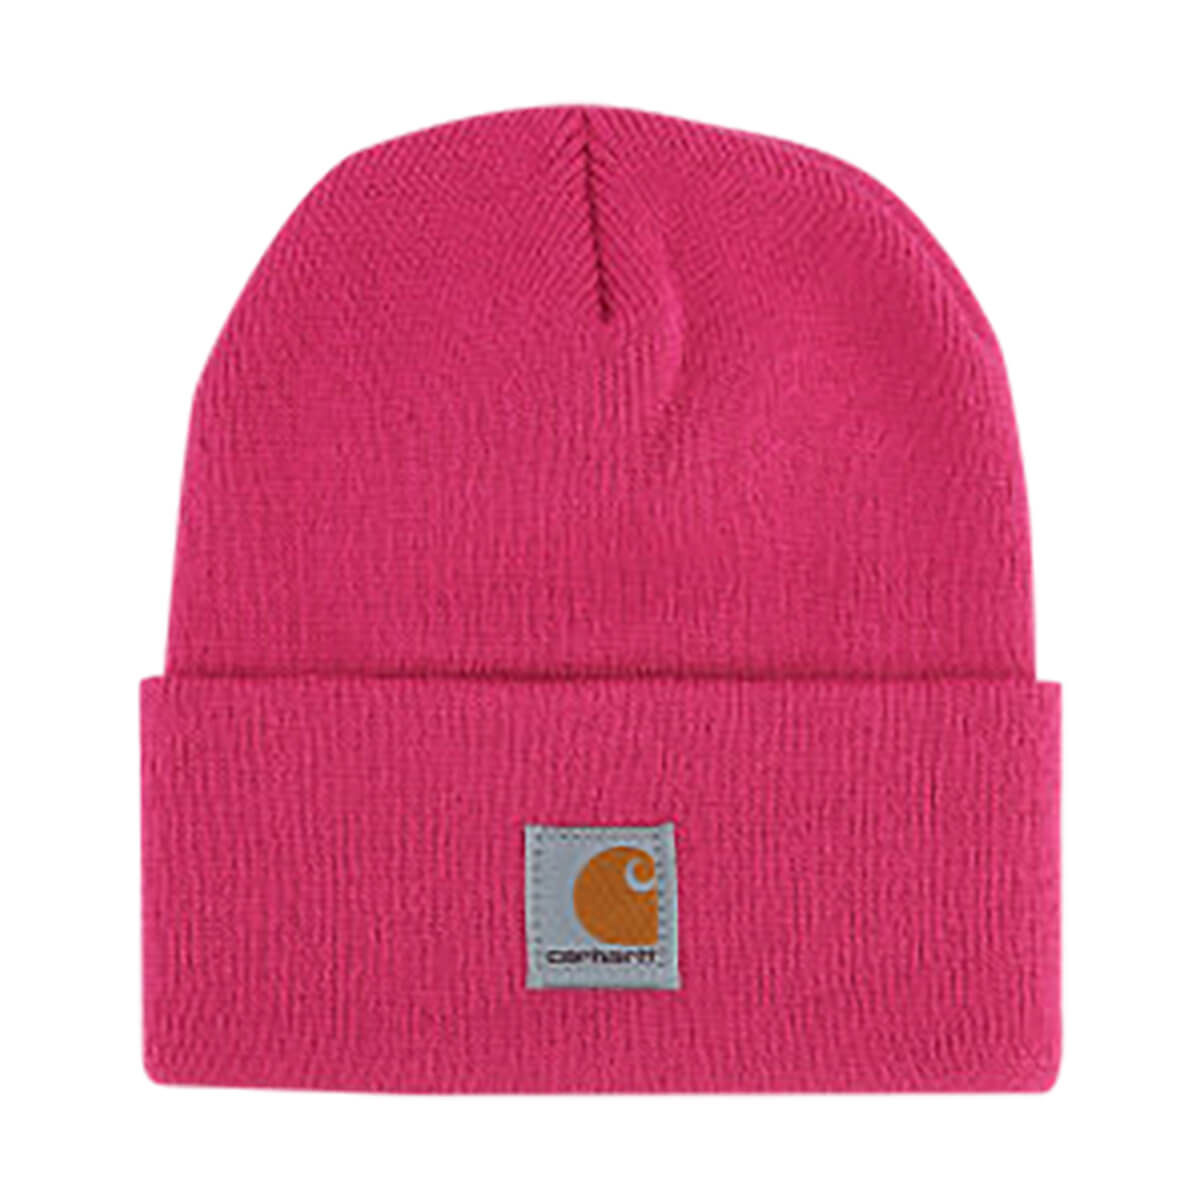 Carhartt Youth Watch Hat - Rosebloom Youth